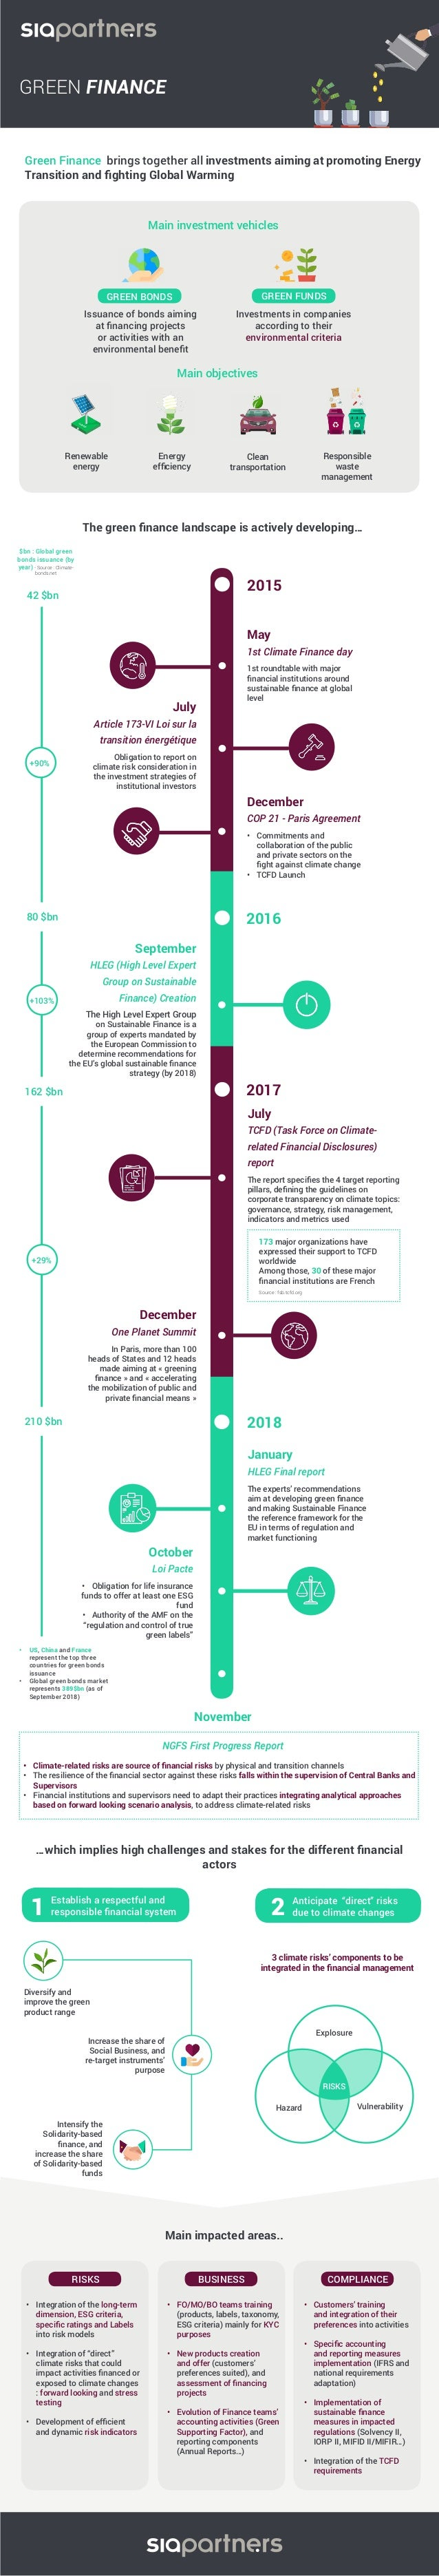 Infographic Green Finance